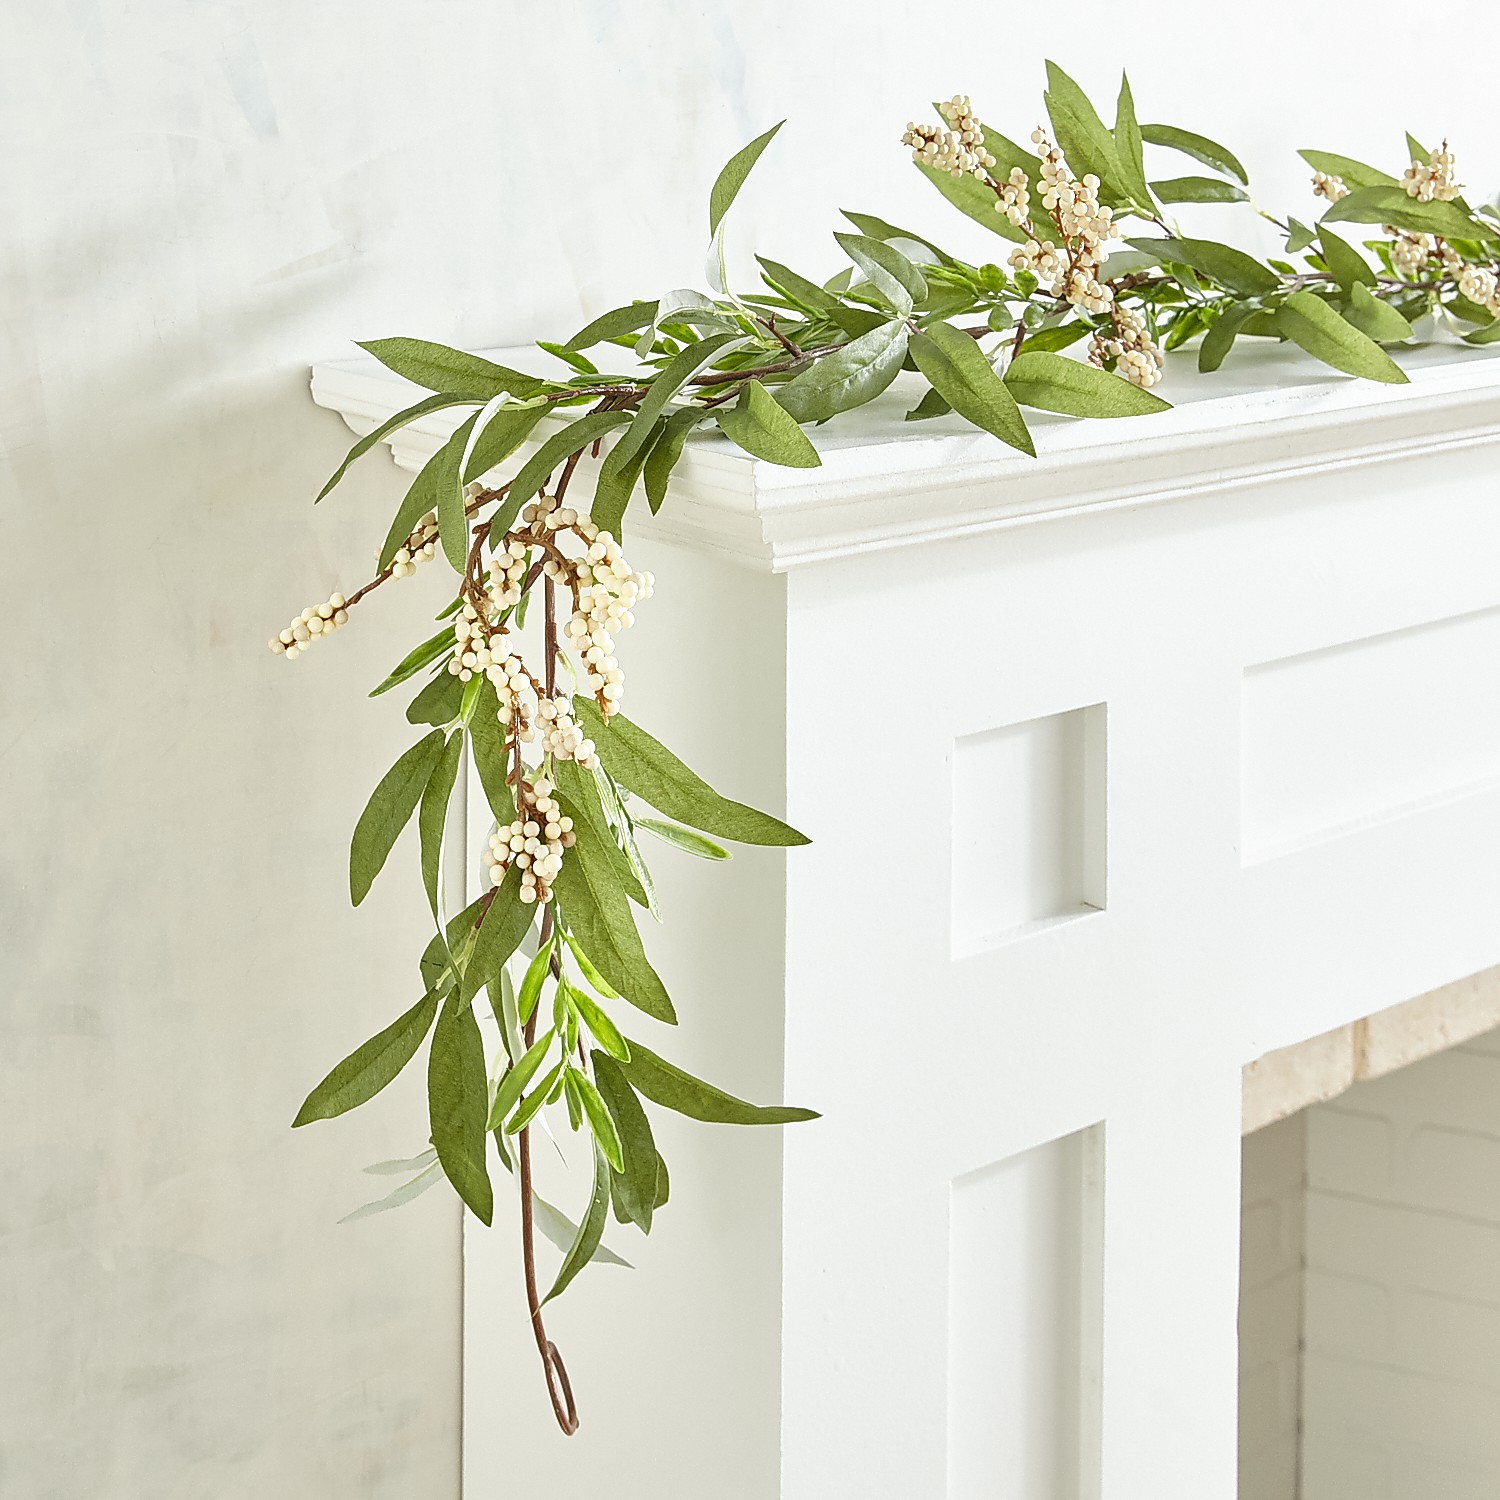 Faux Olive Leaves & Berries 6' Garland